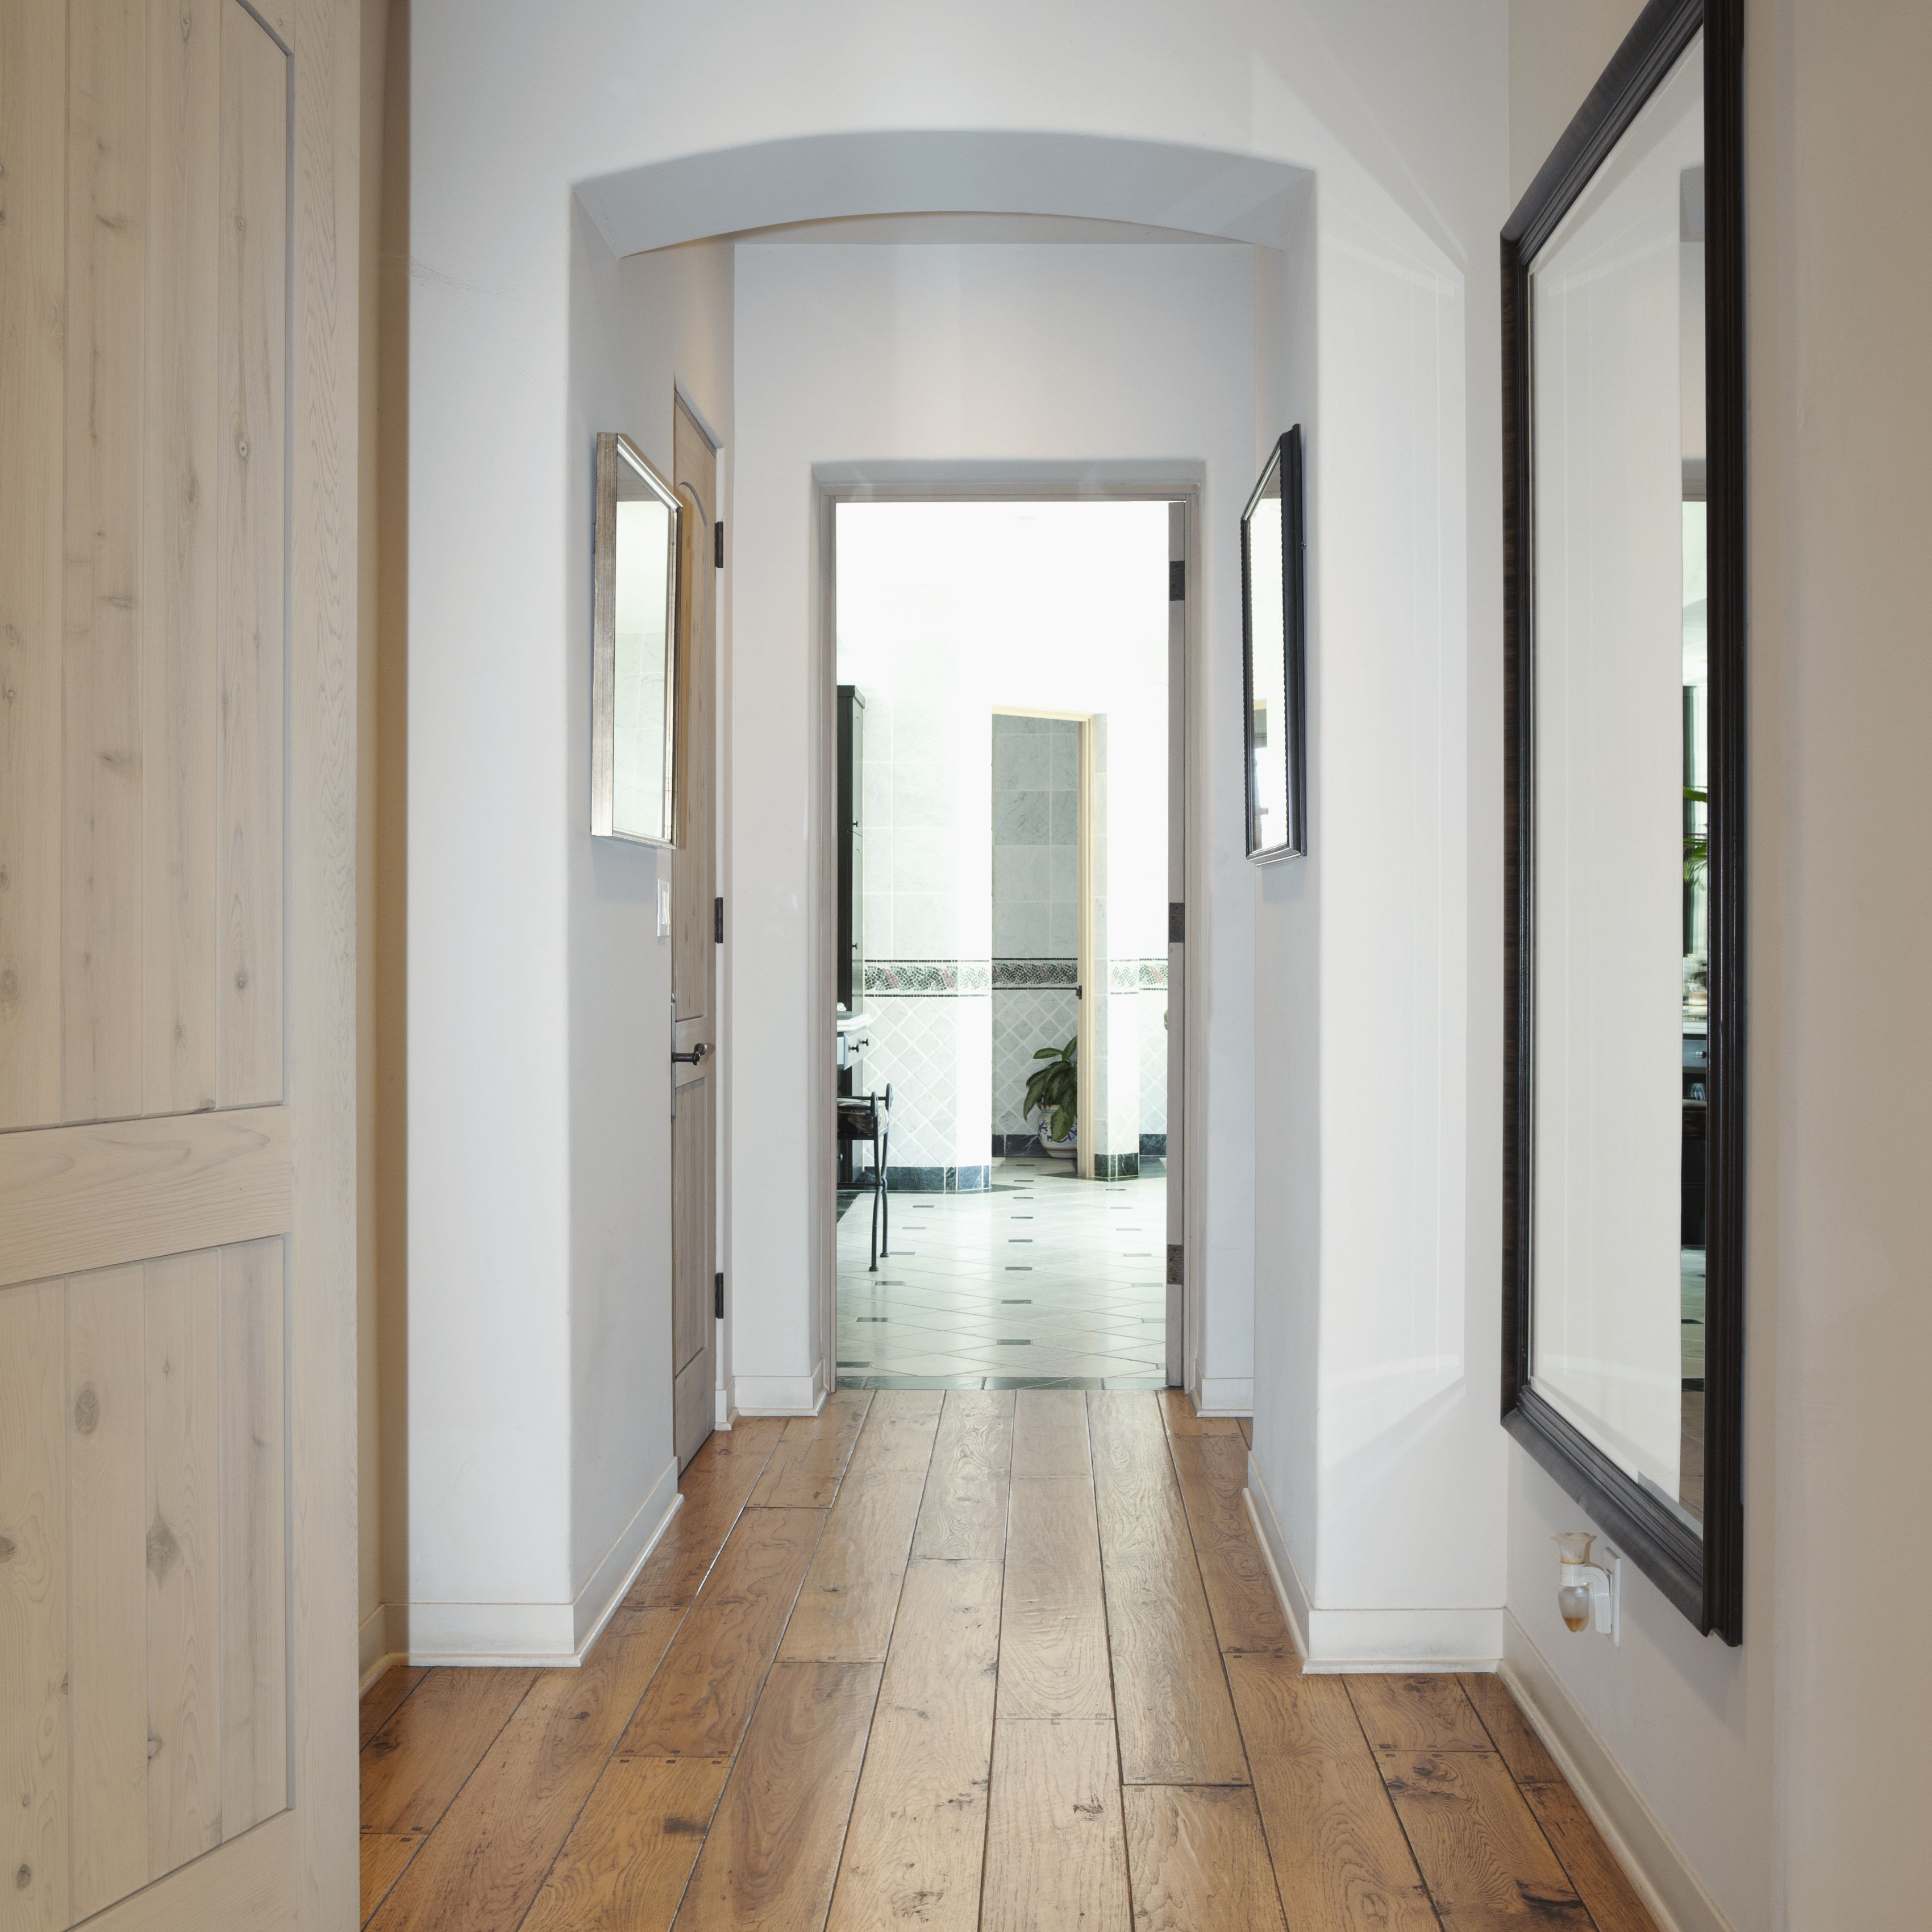 Feng Shui Tips for a Long Hallway Narrow Hall With Lake View House Plan on narrow lot floor plans, narrow lakefront house plans, narrow houses floor plans, narrow lot cottage house plans,